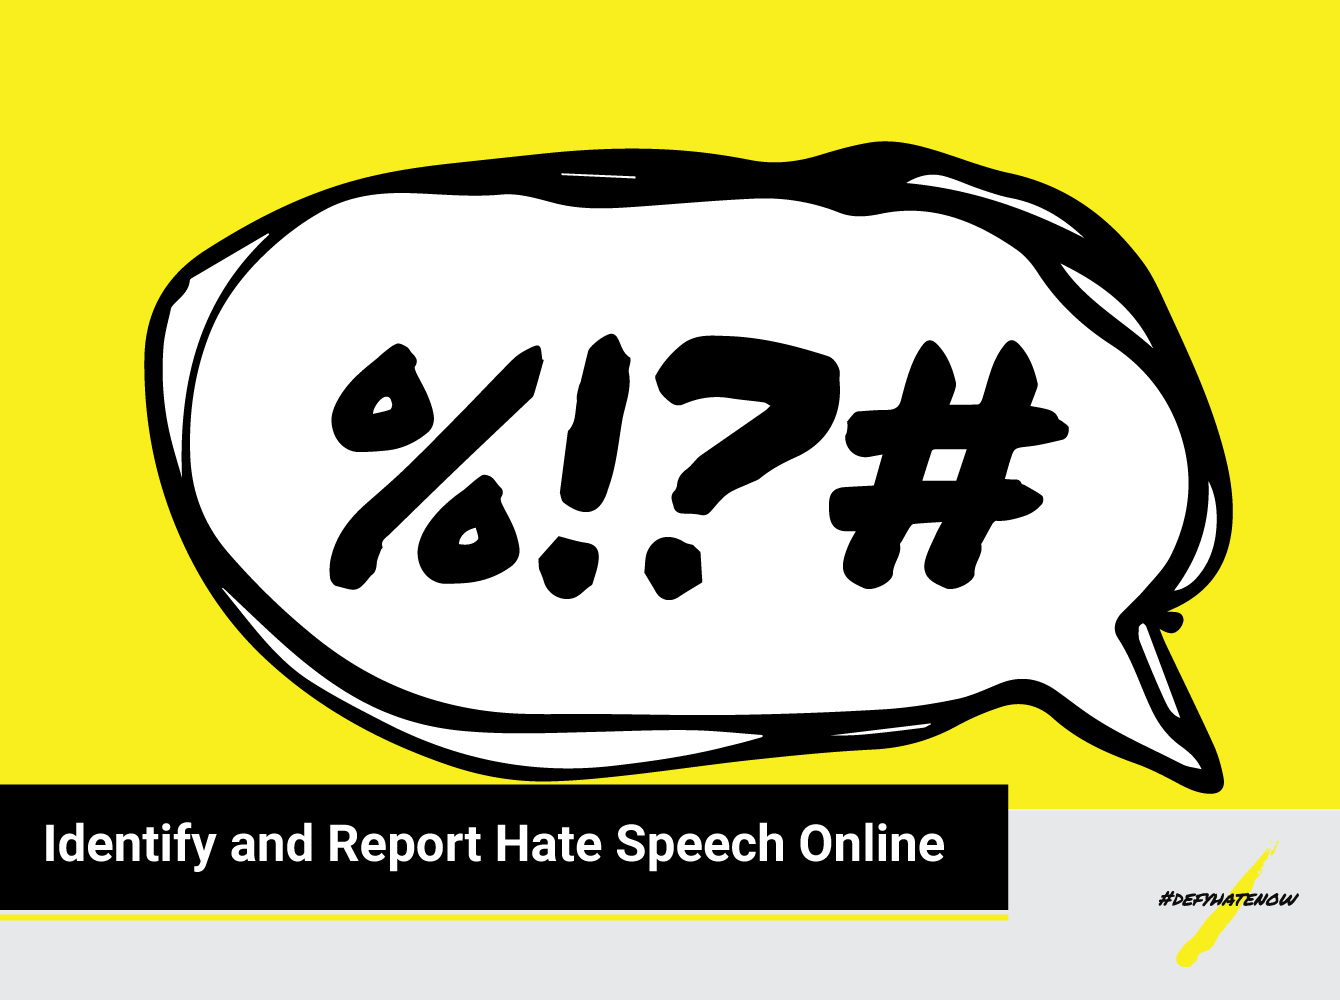 #defyhatenow Identify & Report Hate Speech Online